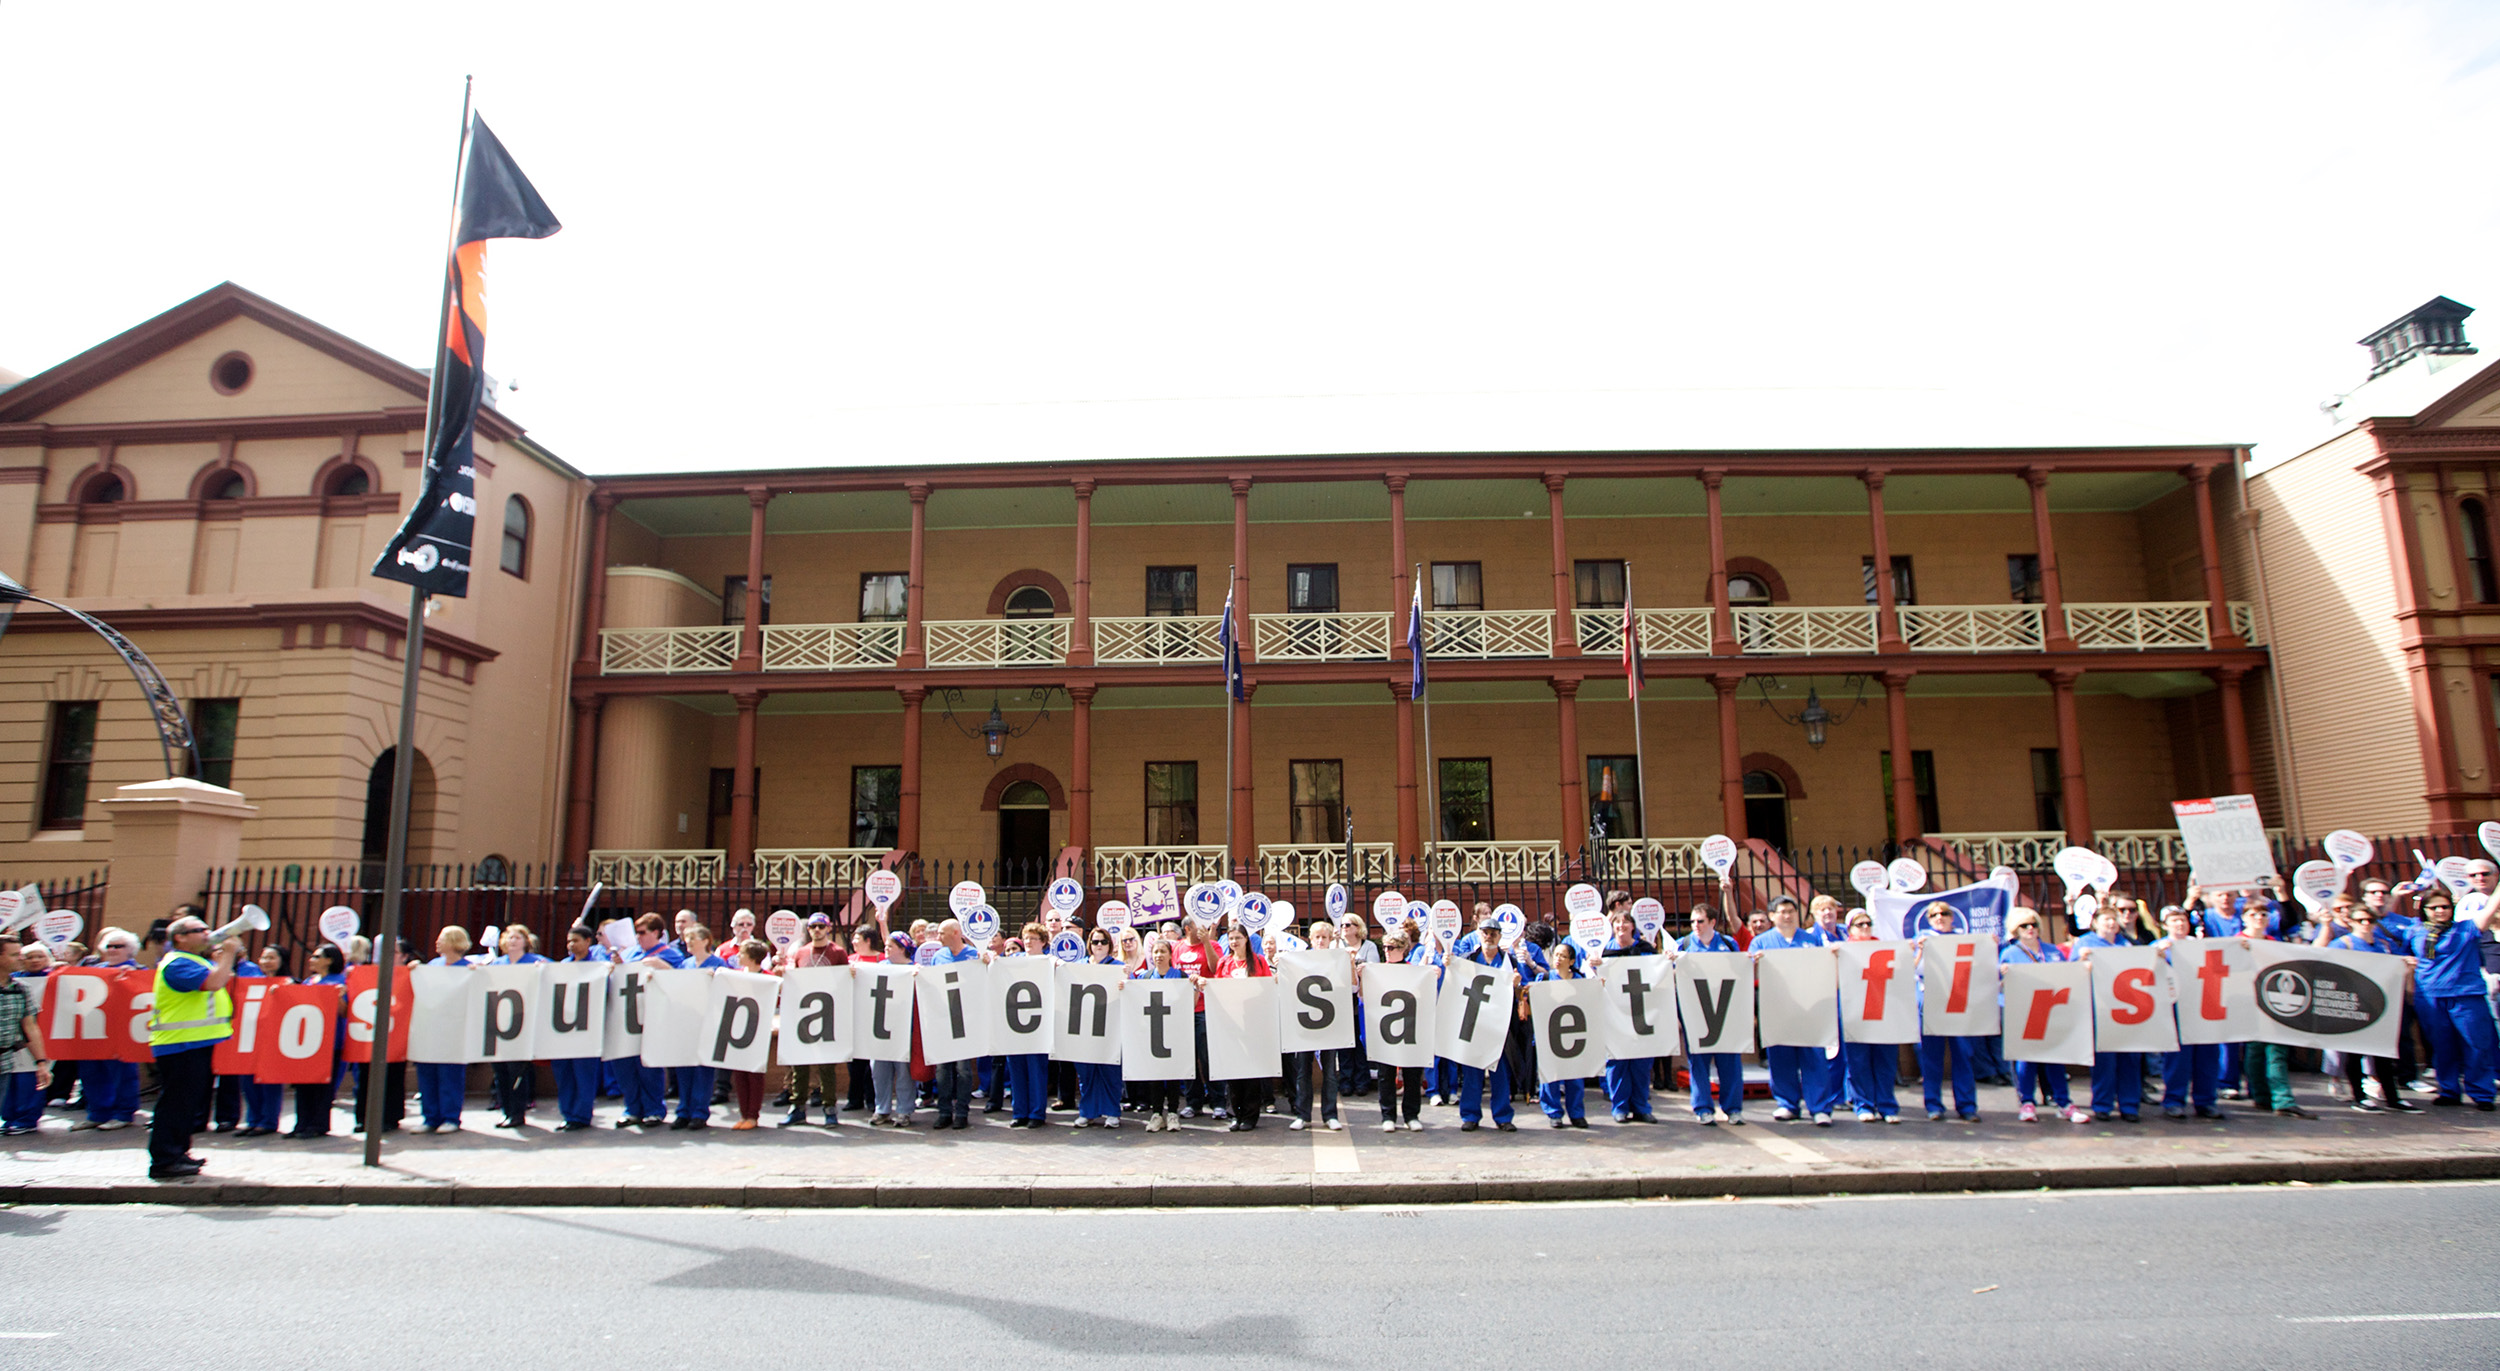 New South Wales Nurses and Midwives' Association rally